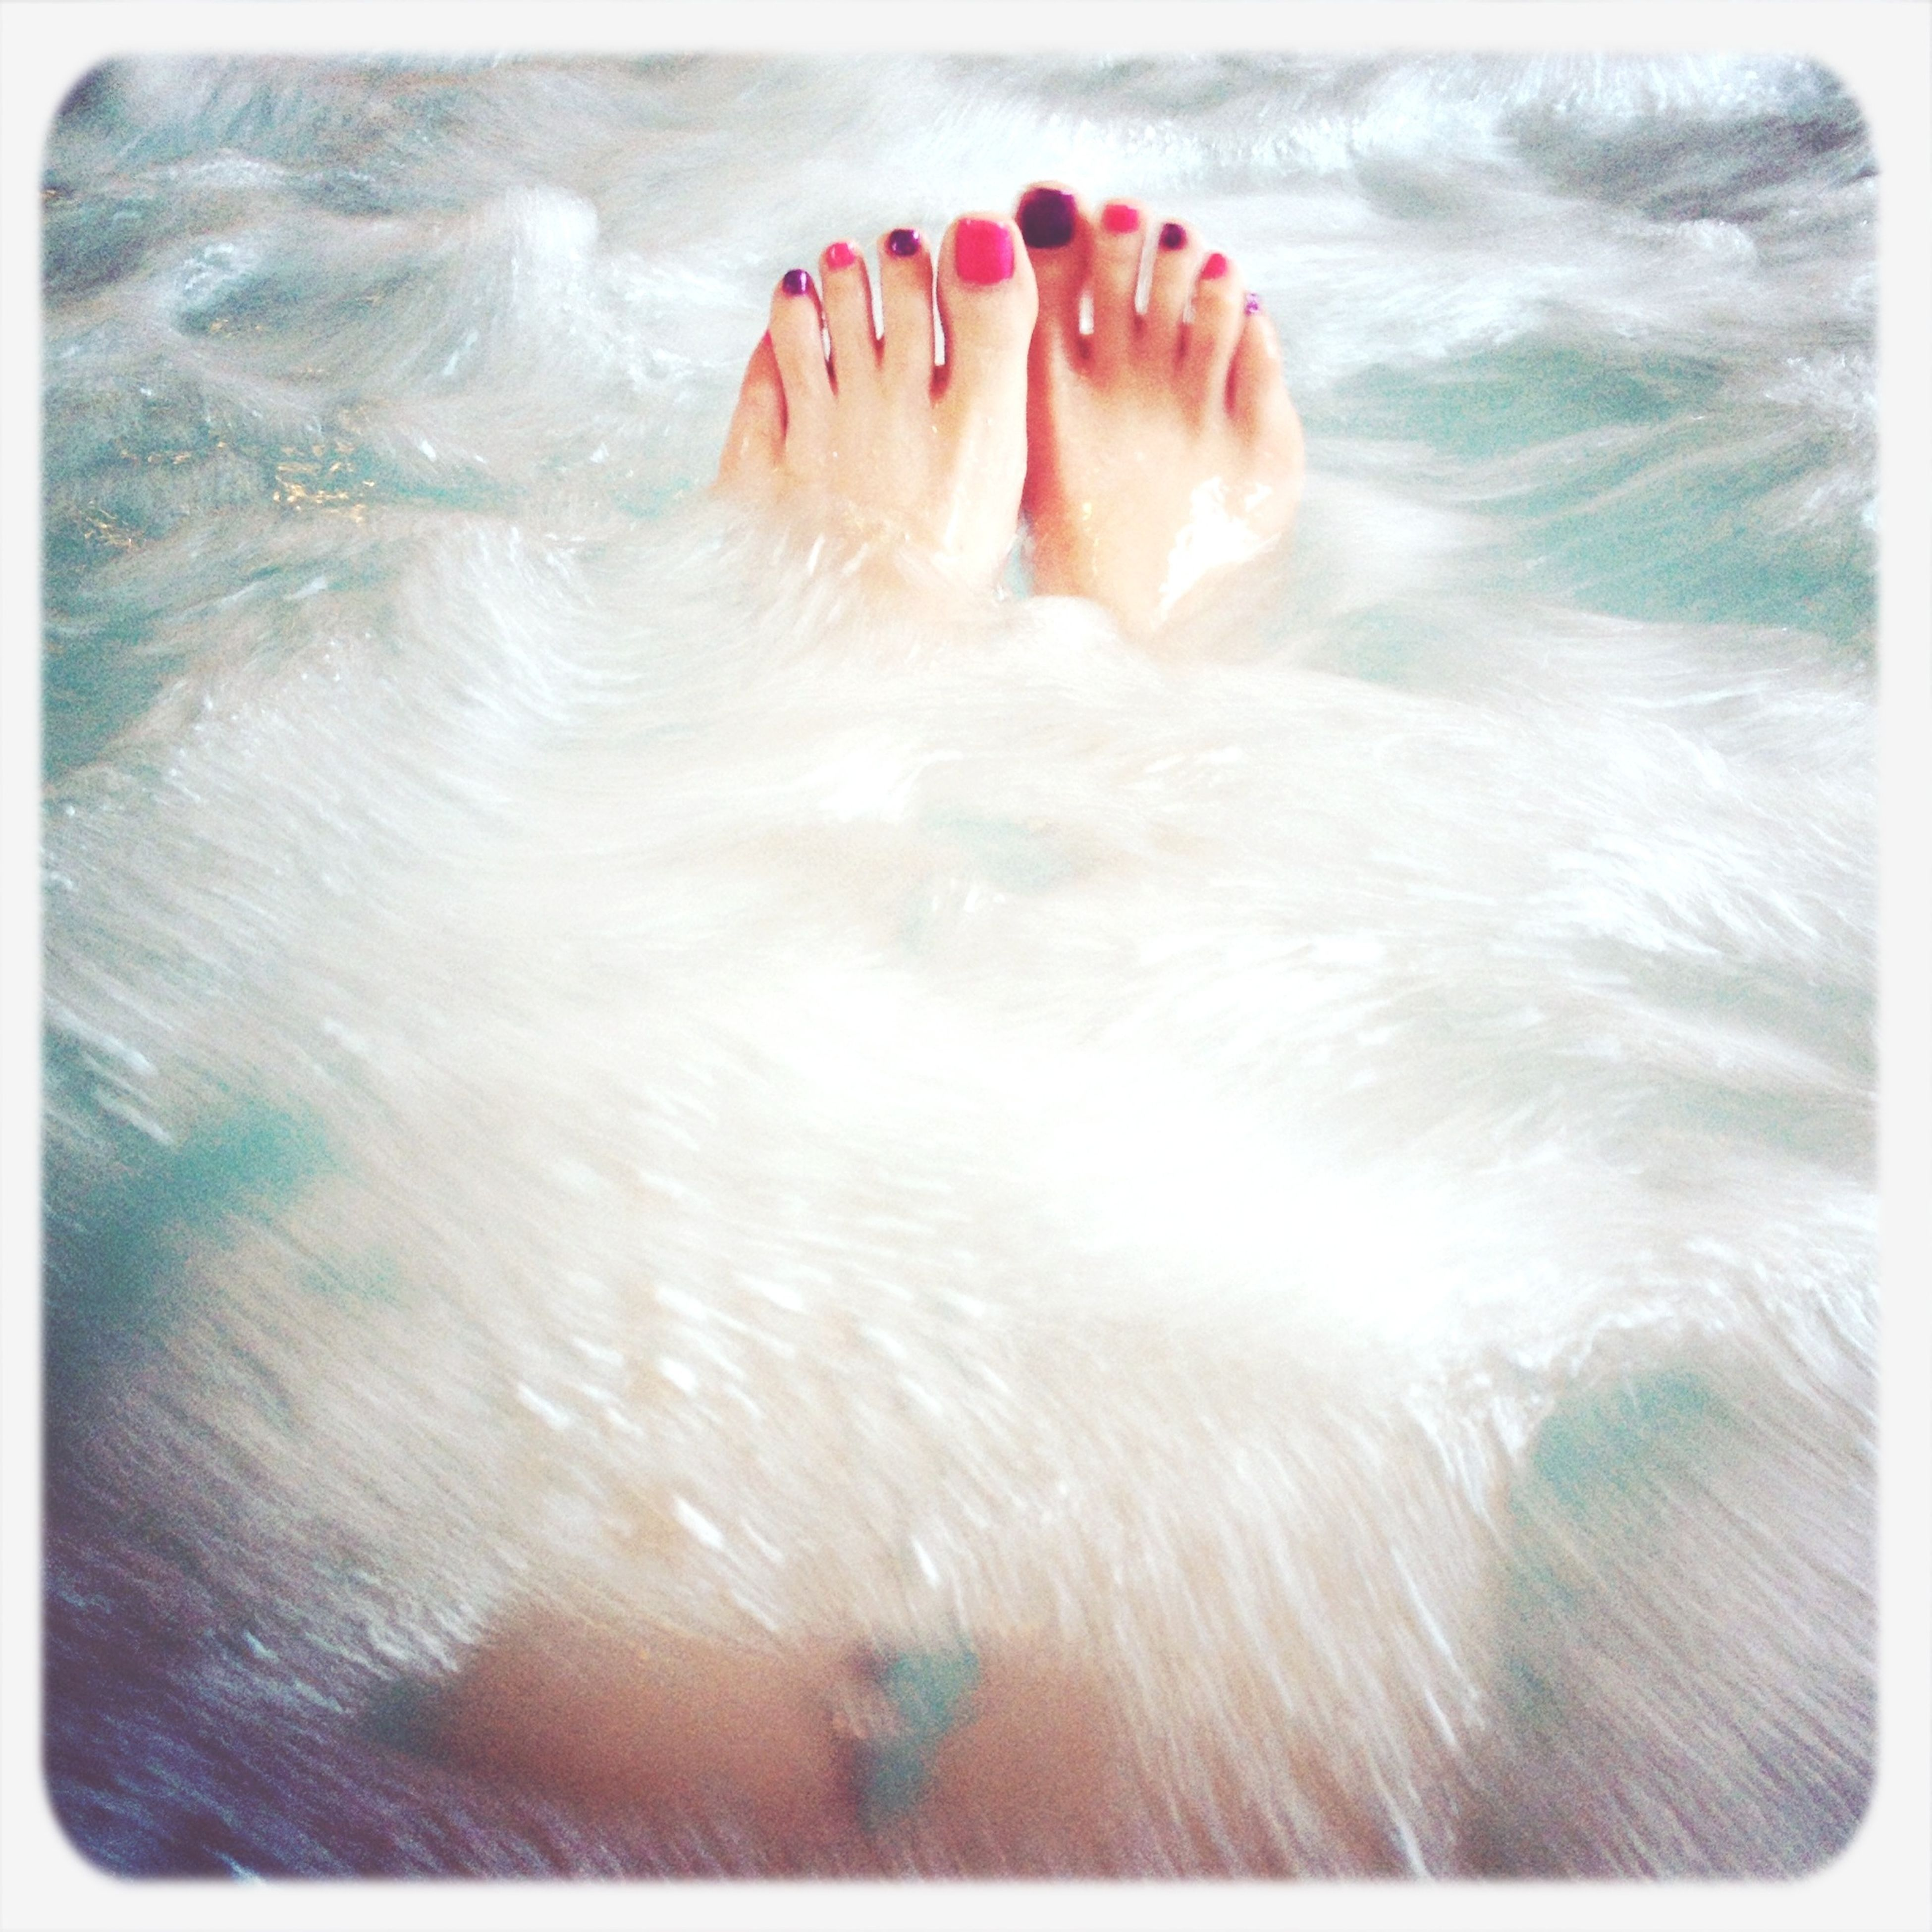 water, person, low section, barefoot, high angle view, auto post production filter, human foot, transfer print, leisure activity, lifestyles, part of, swimming, unrecognizable person, relaxation, sea, beach